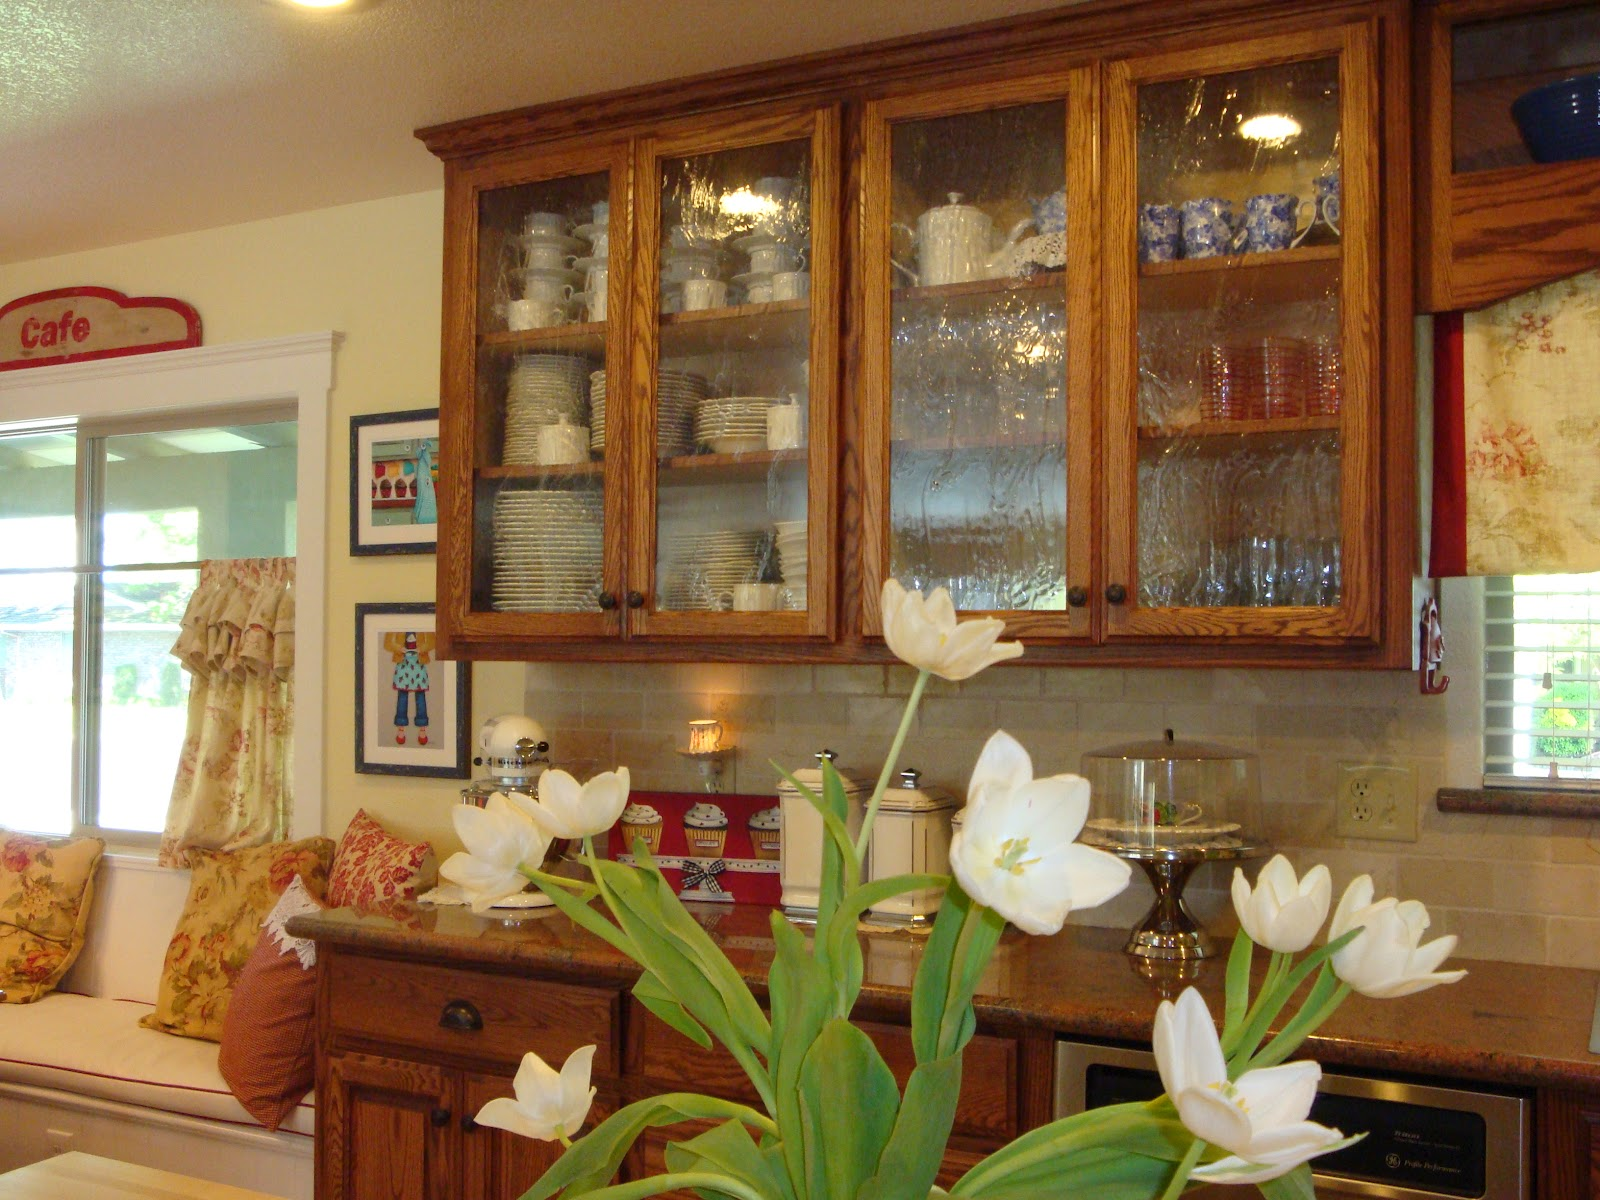 Best Kitchen Gallery: Home Is Where The Heart Is Seeded Glass In The Kitchen of Seedy Glass For Kitchen Cabinets on cal-ite.com